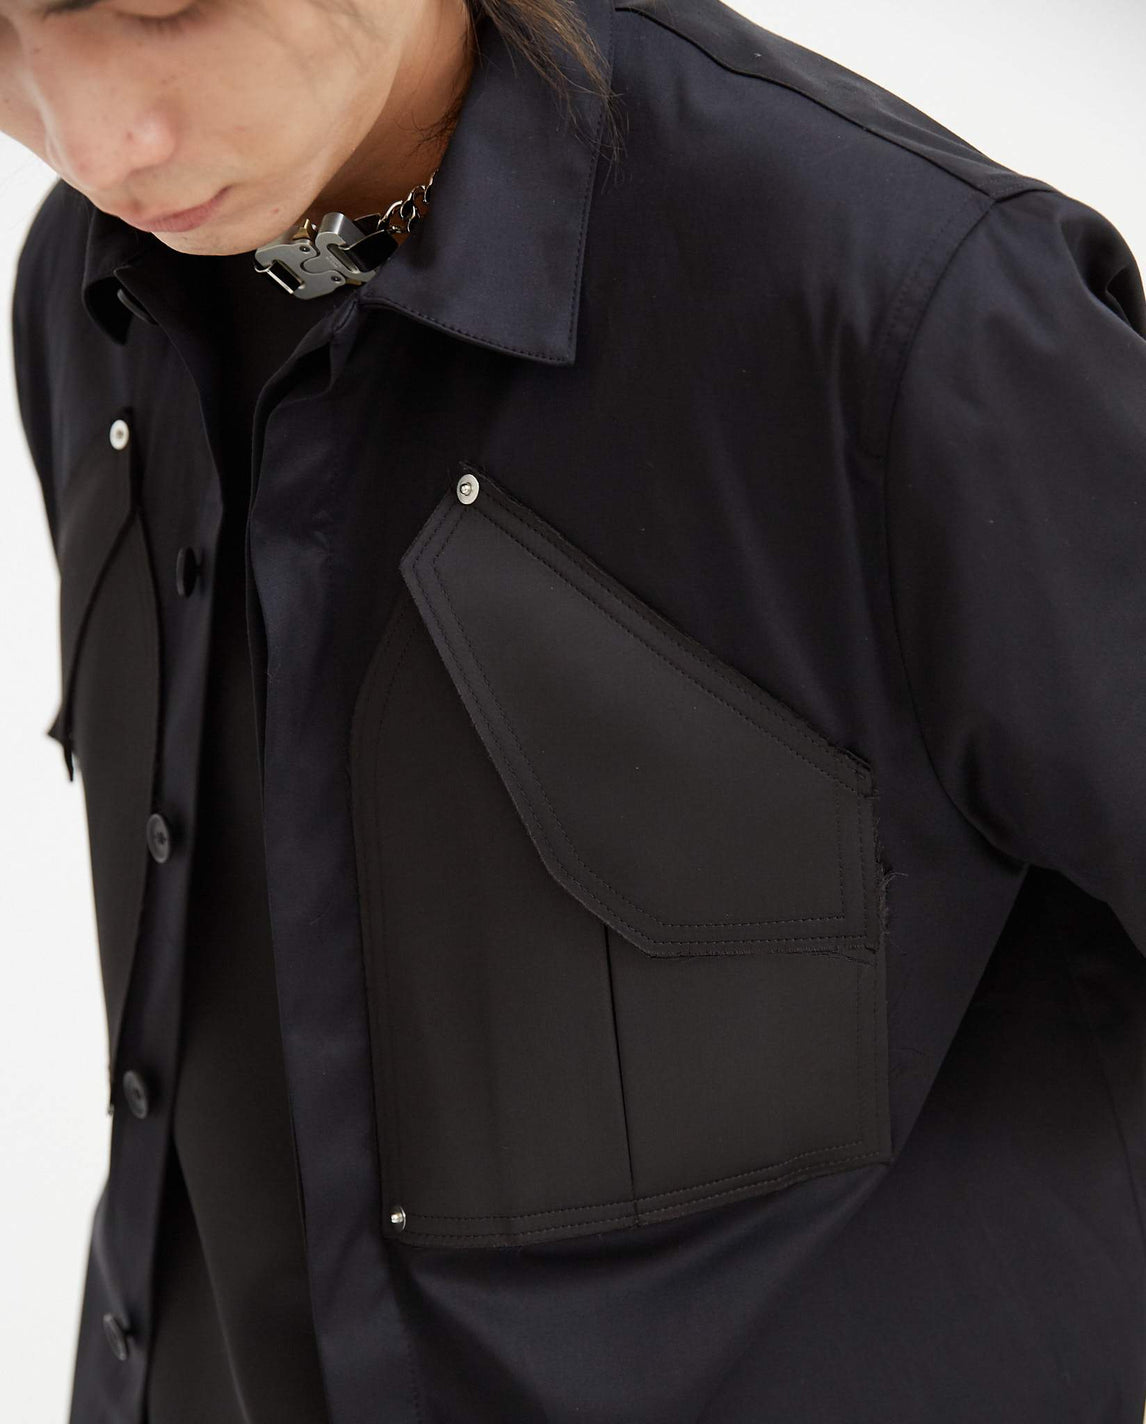 Cargo Shirt - Black MENS 1017 ALYX 9SM